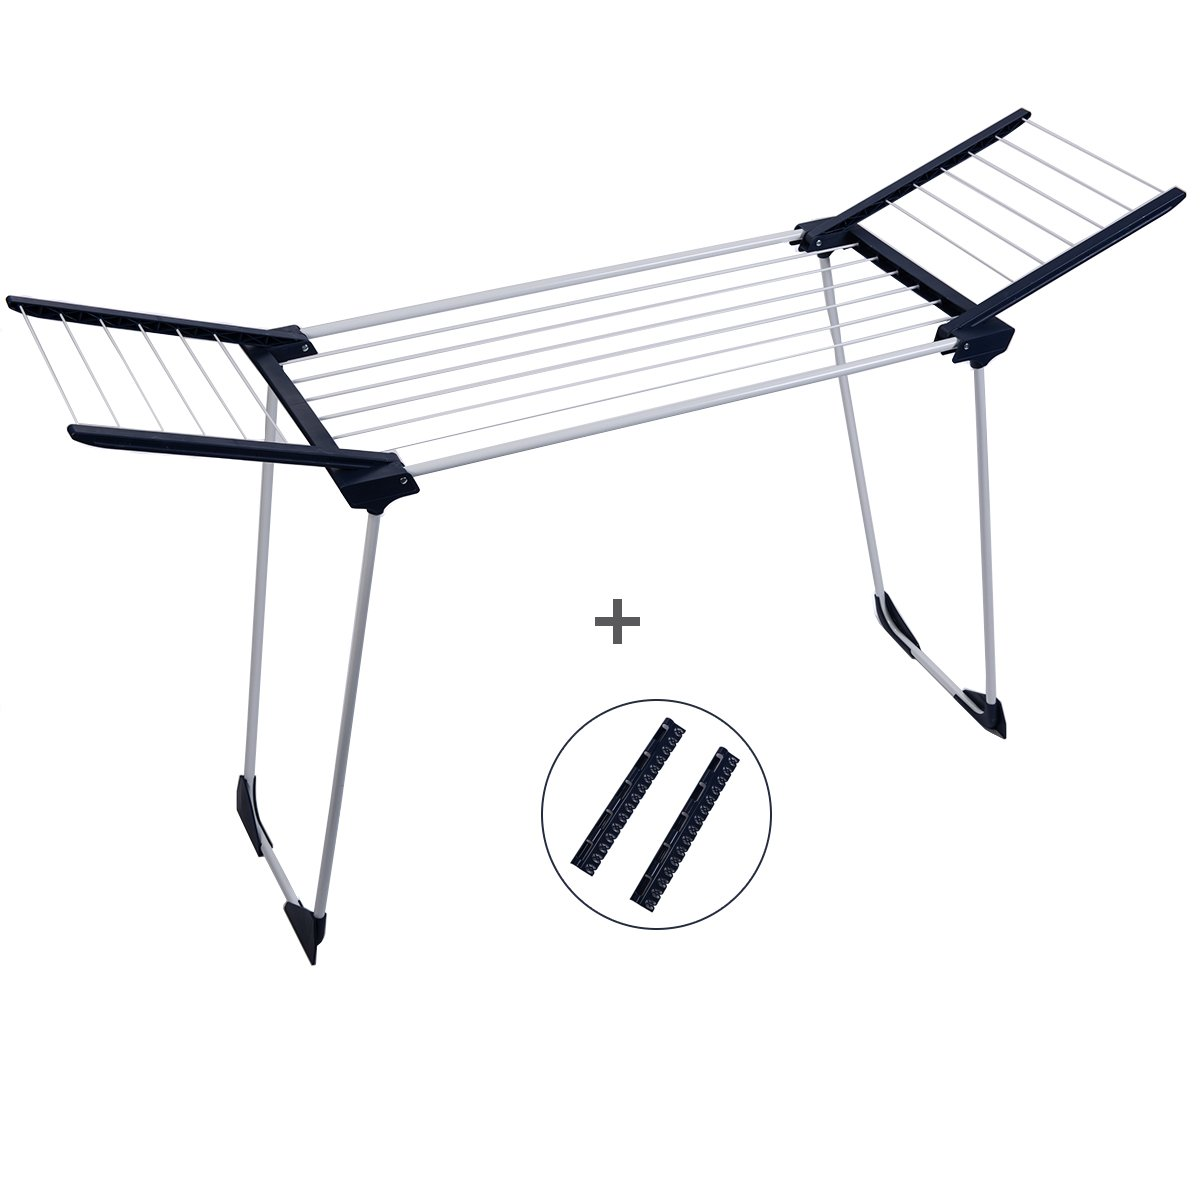 Drynatural Laundry Drying Rack Suitable for Bathtub, Foldable, Steel, Portable Clothes Drying Rack with Gullwing for Flat Drying